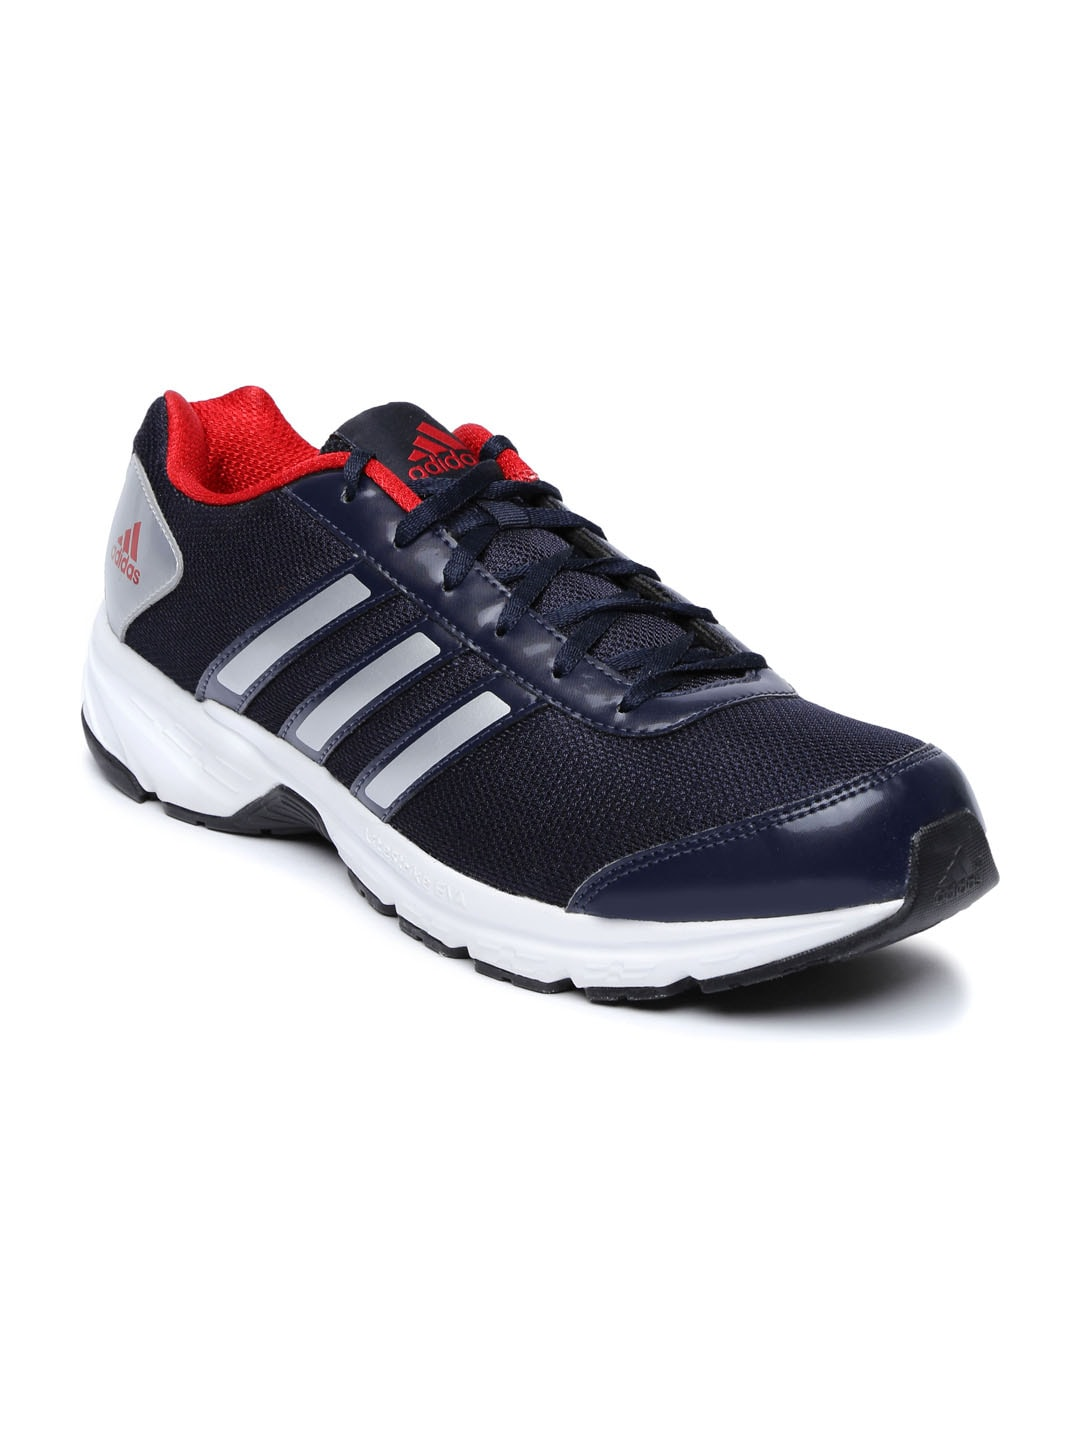 check out 483d0 d969c Adidas b79185 Men Navy Adisonic Running Shoes- Price in India